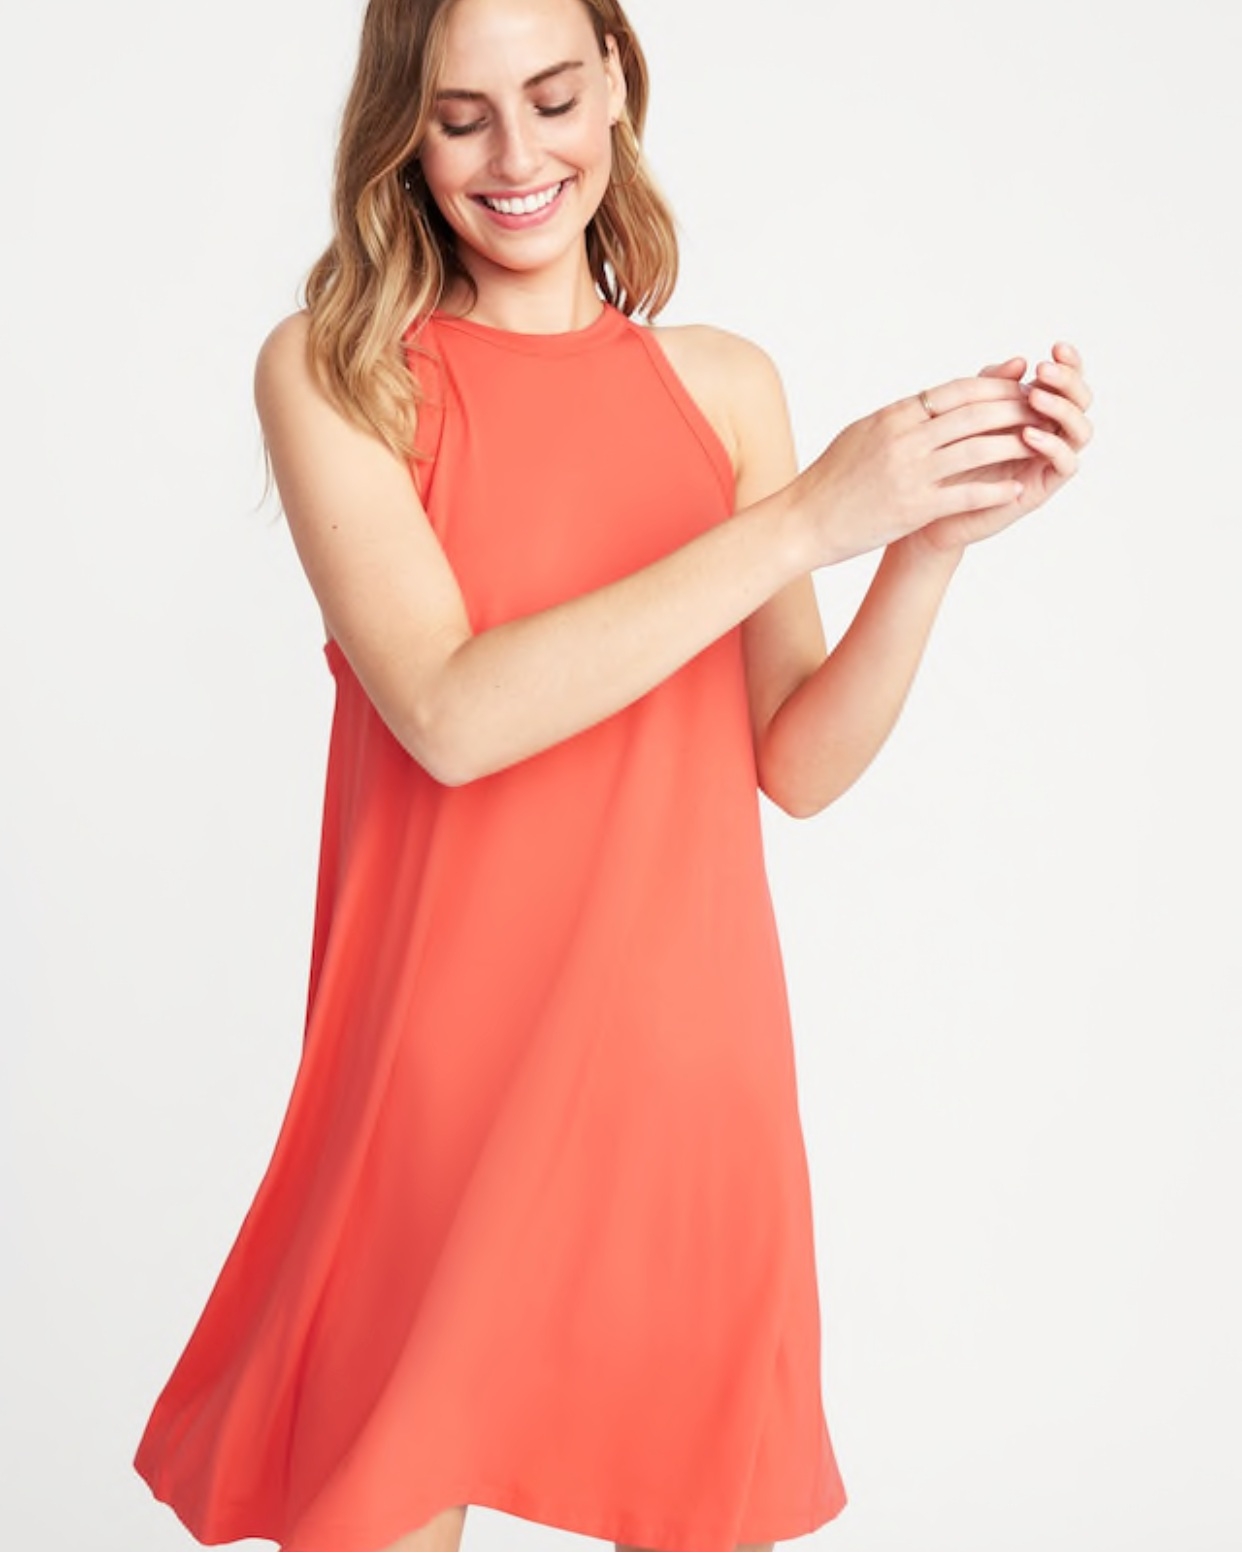 - Love the high neck on this dress! So cute for summer date nights!Find it here.